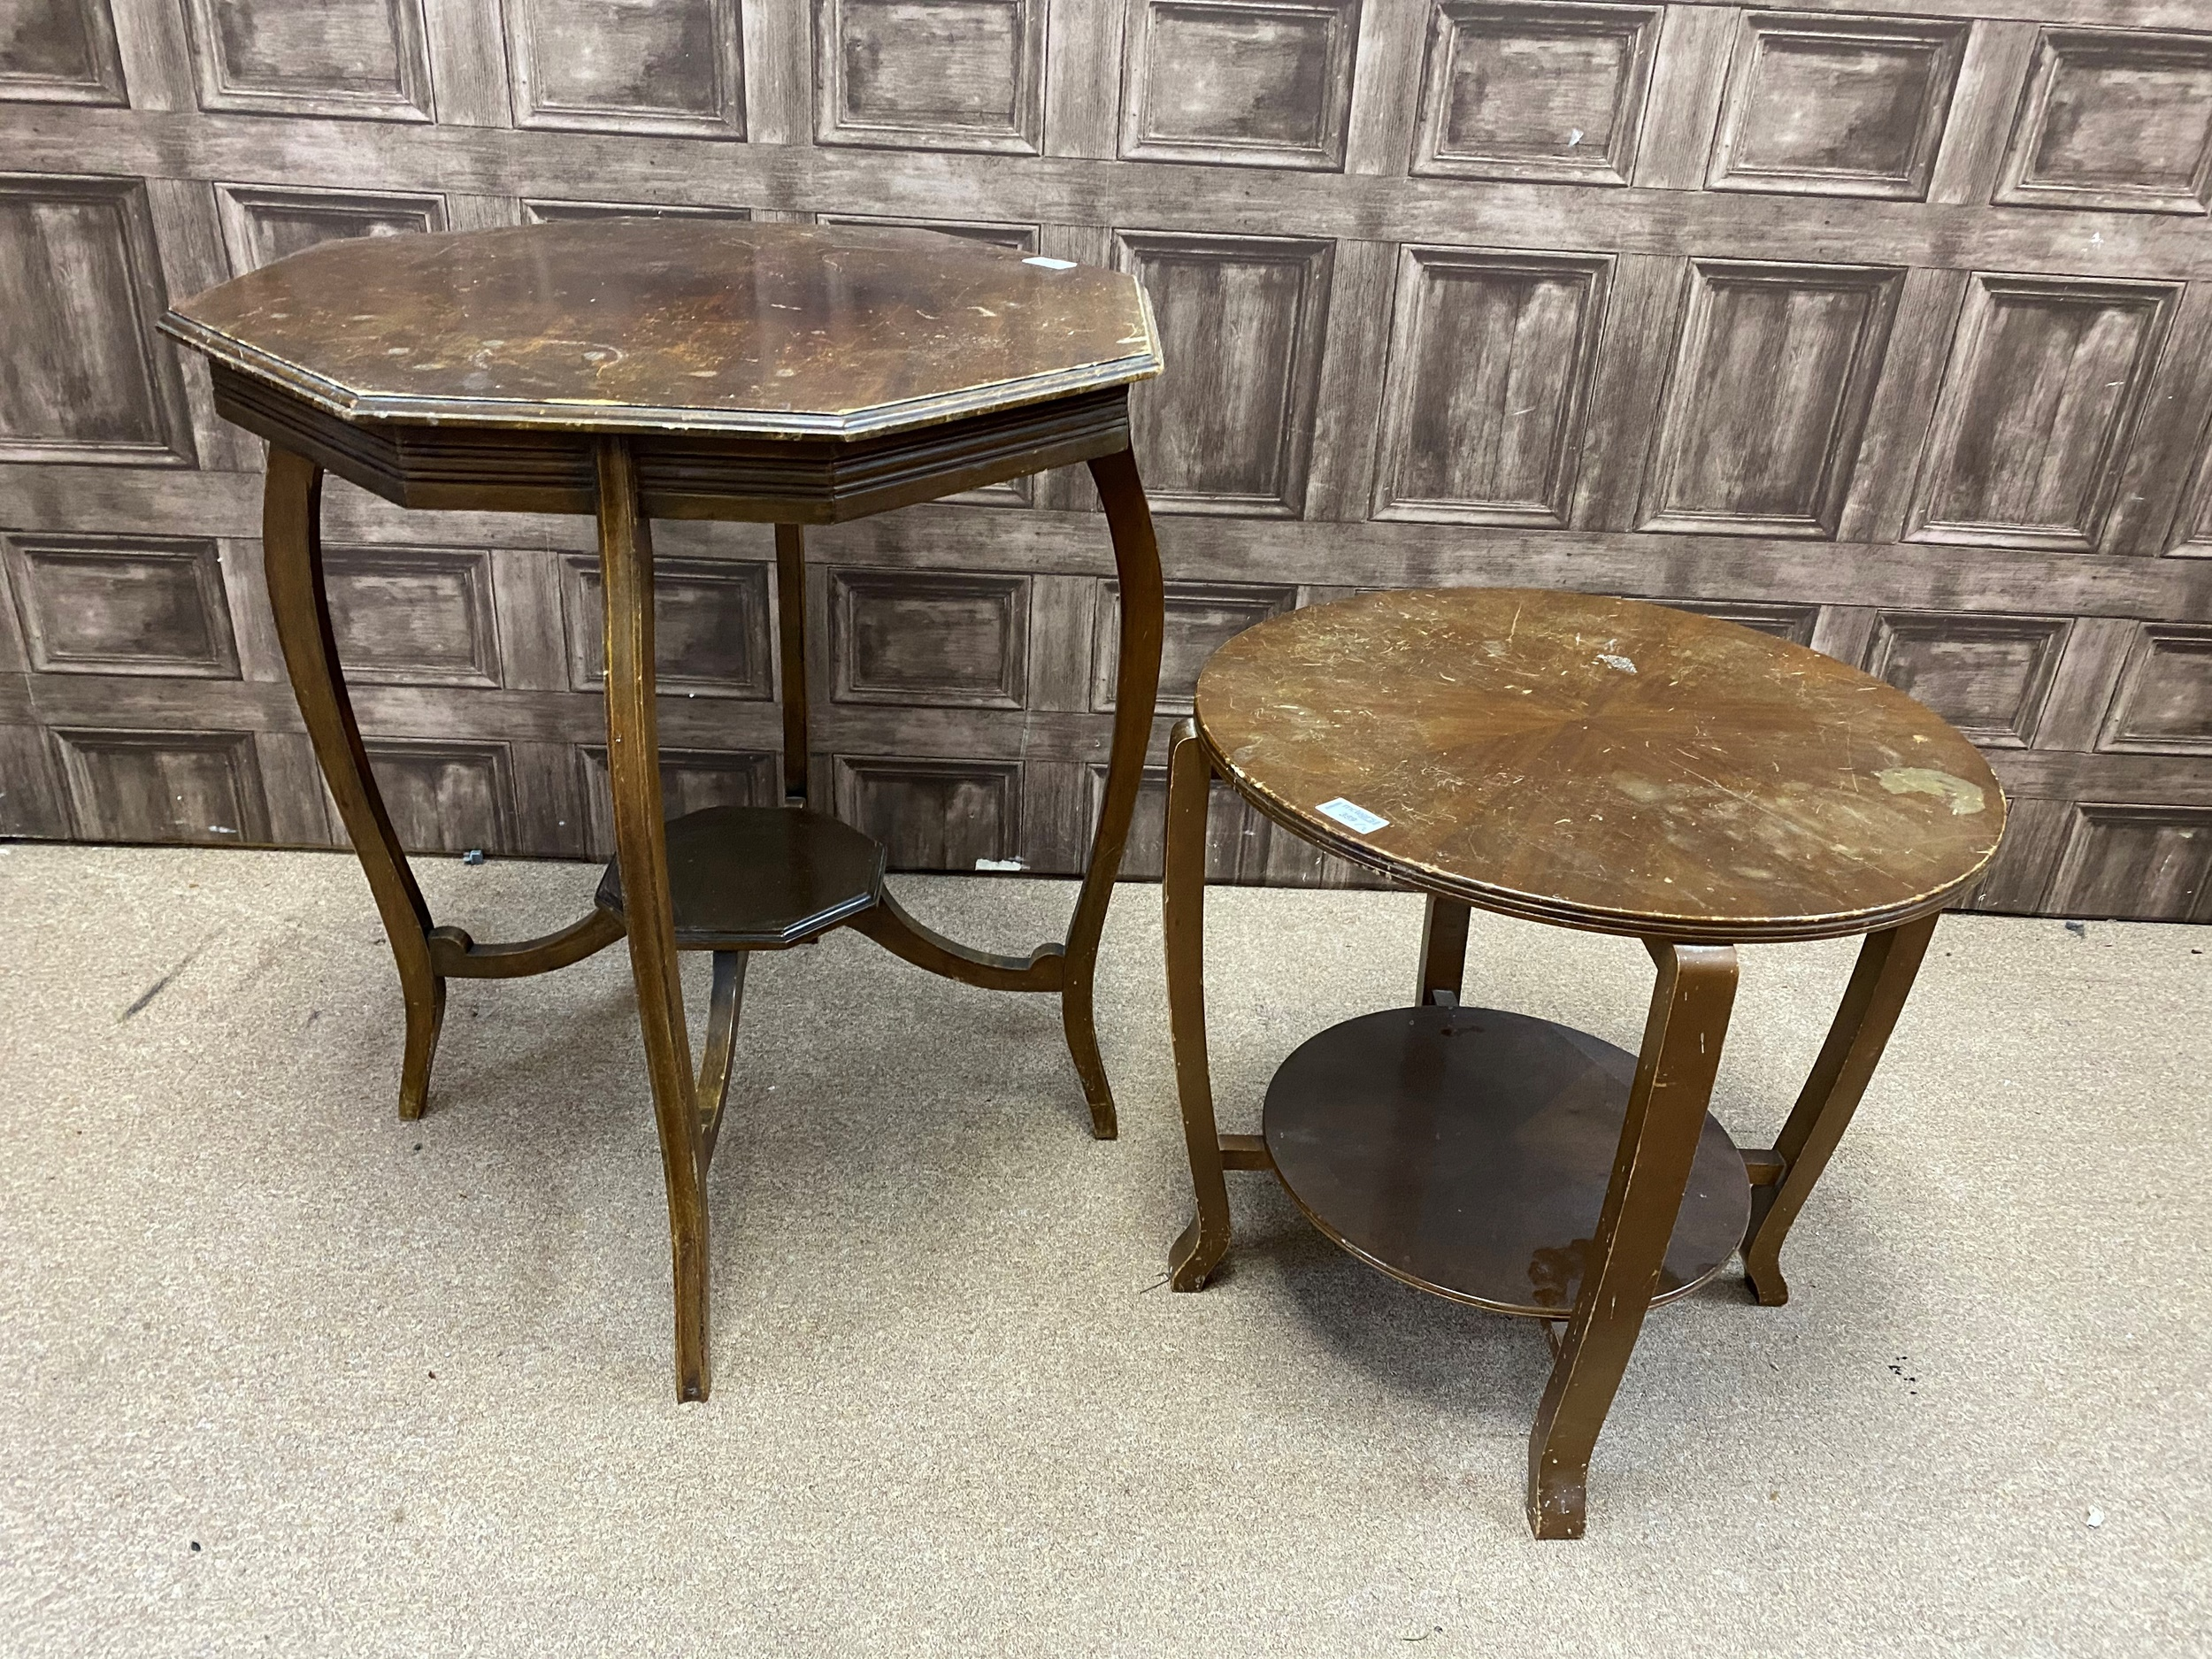 A MAHOGANY OCTAGONAL OCCASIONAL TABLE AND A TWO TIER OCCASIONAL TABLE